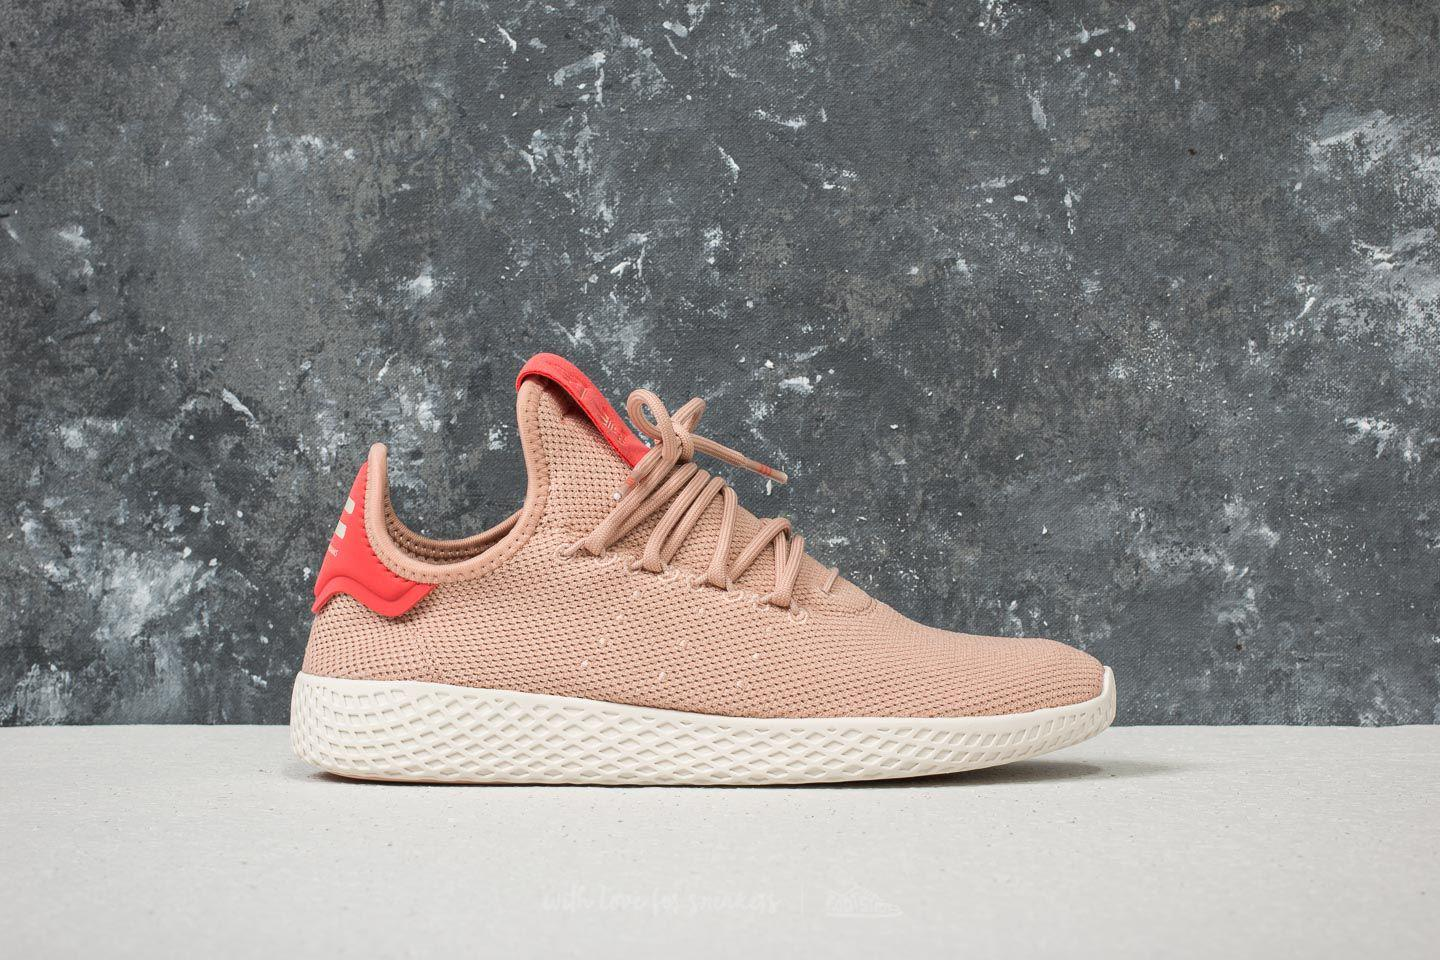 709ce2c44b1da Lyst - adidas Originals Adidas X Pharrell Williams Tennis Hu W Ash ...